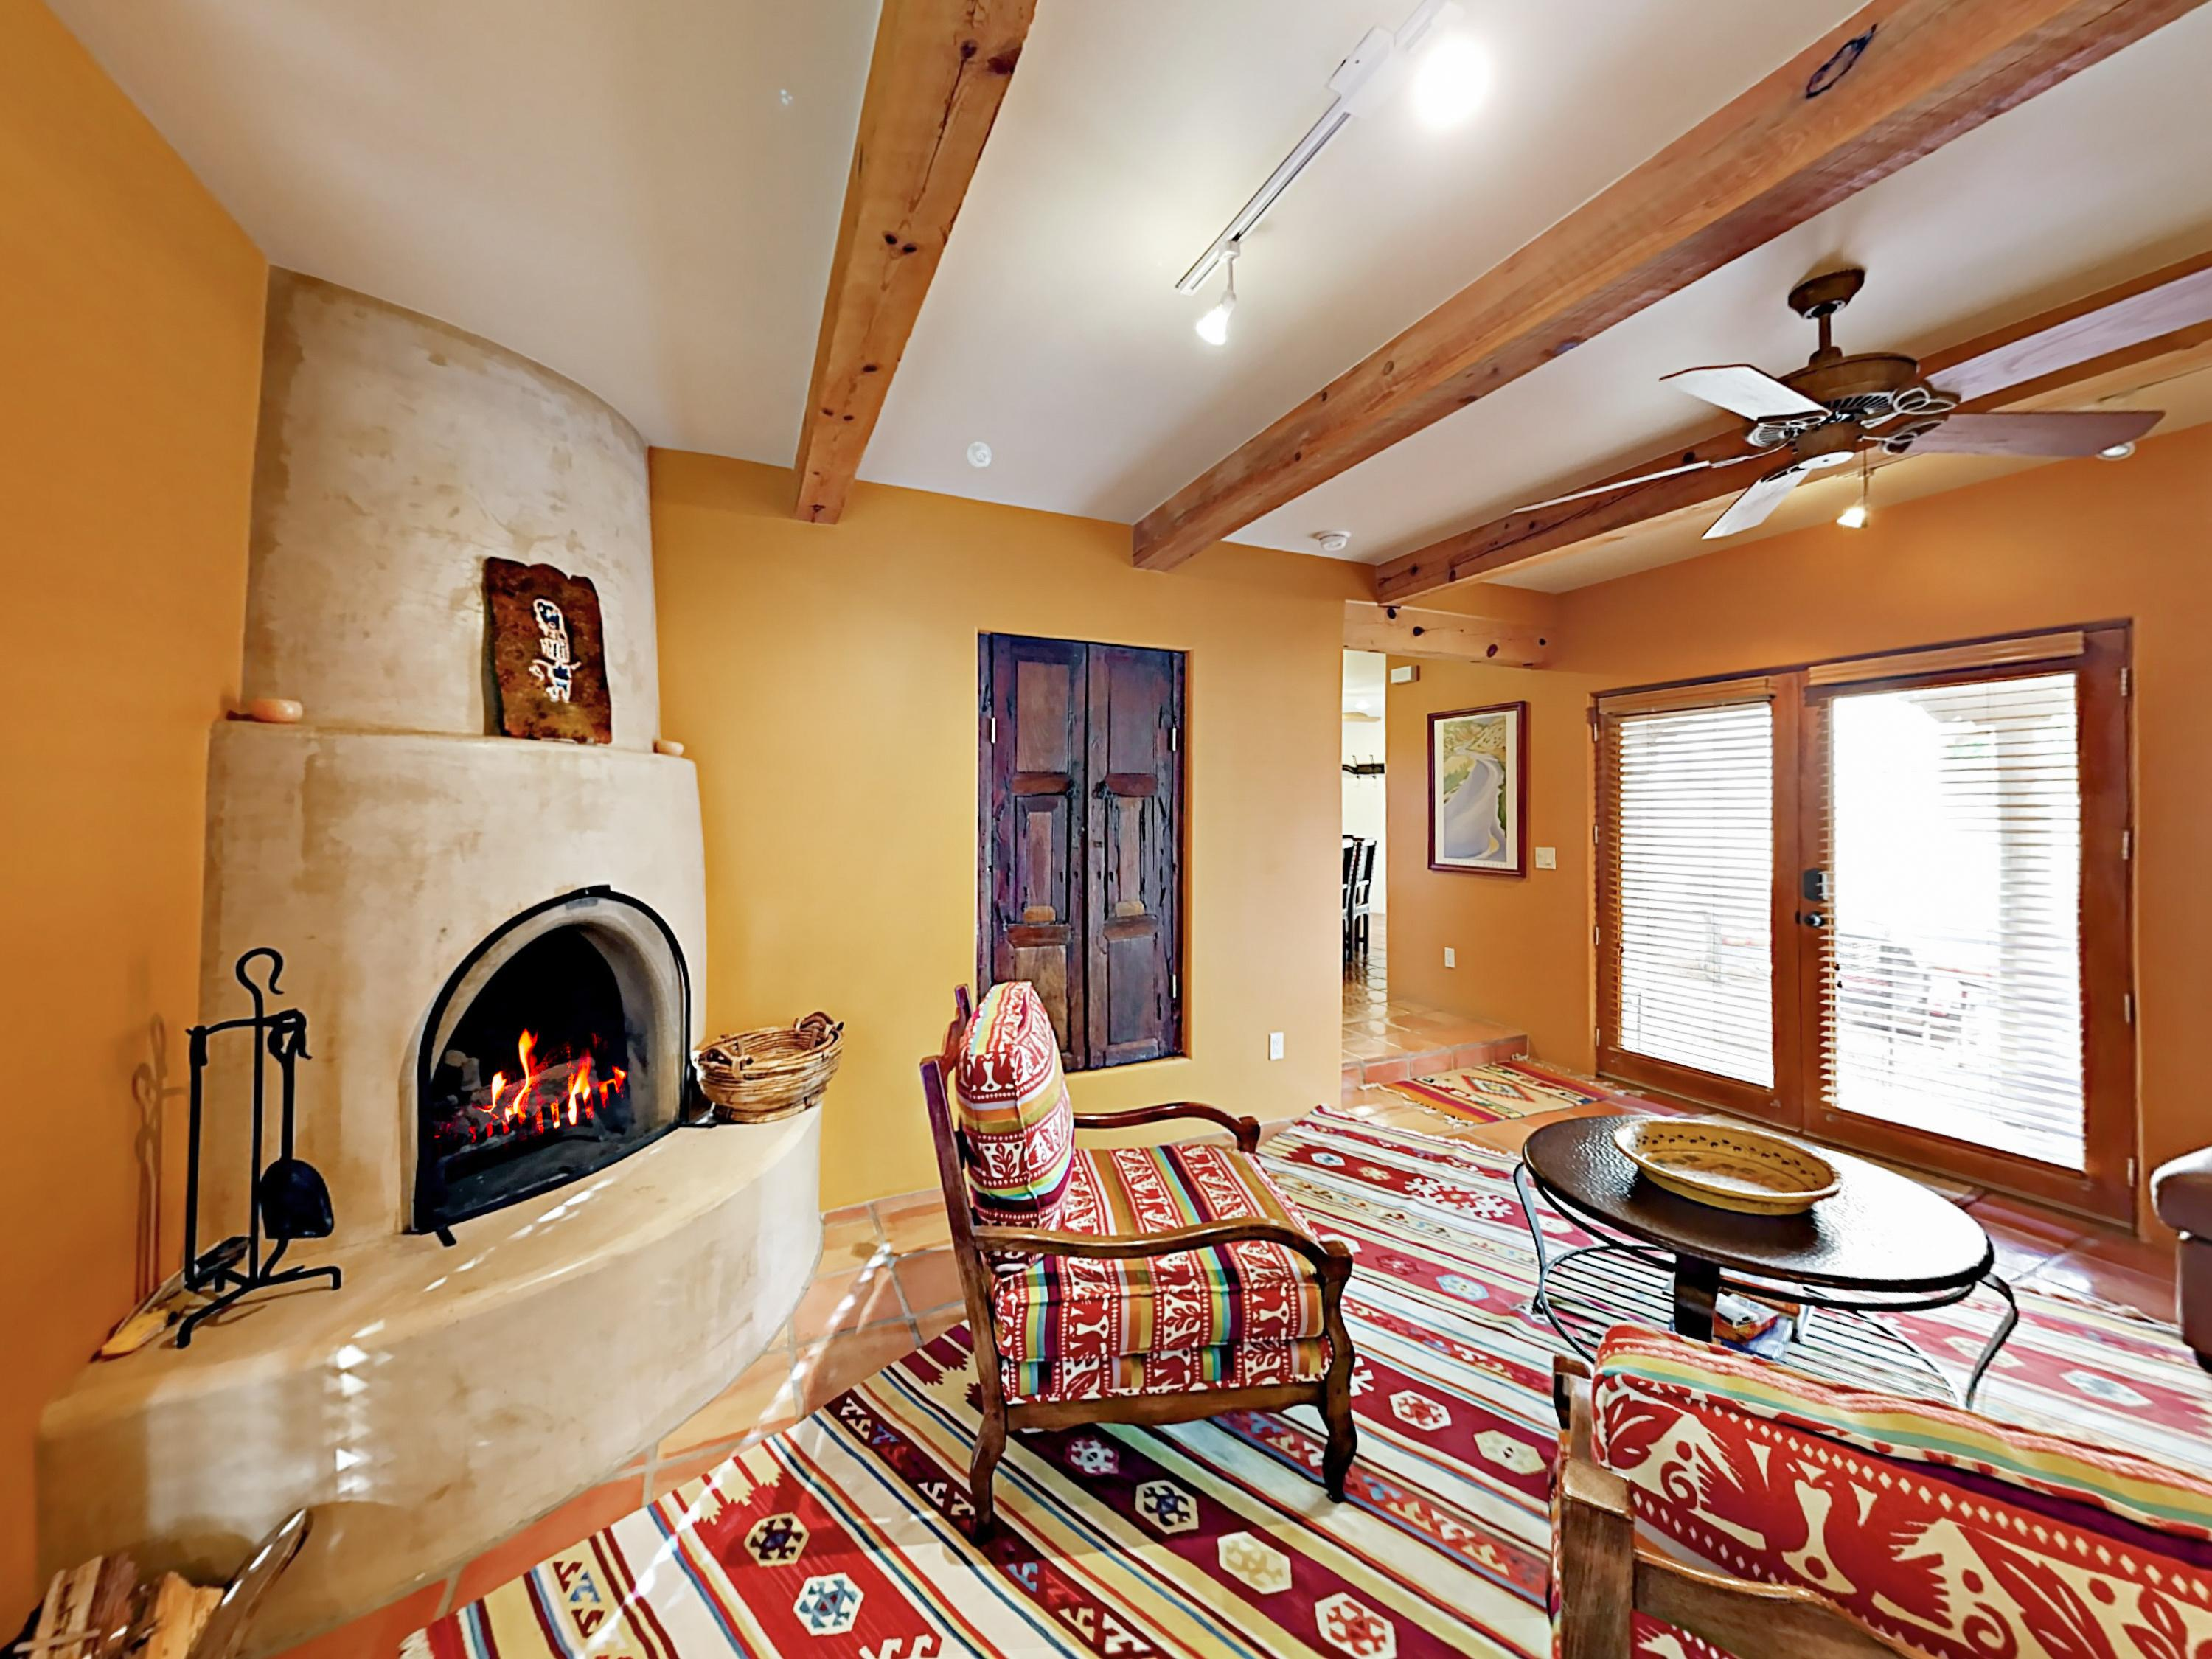 Southwestern-style living area with cozy seating and kiva fireplace.